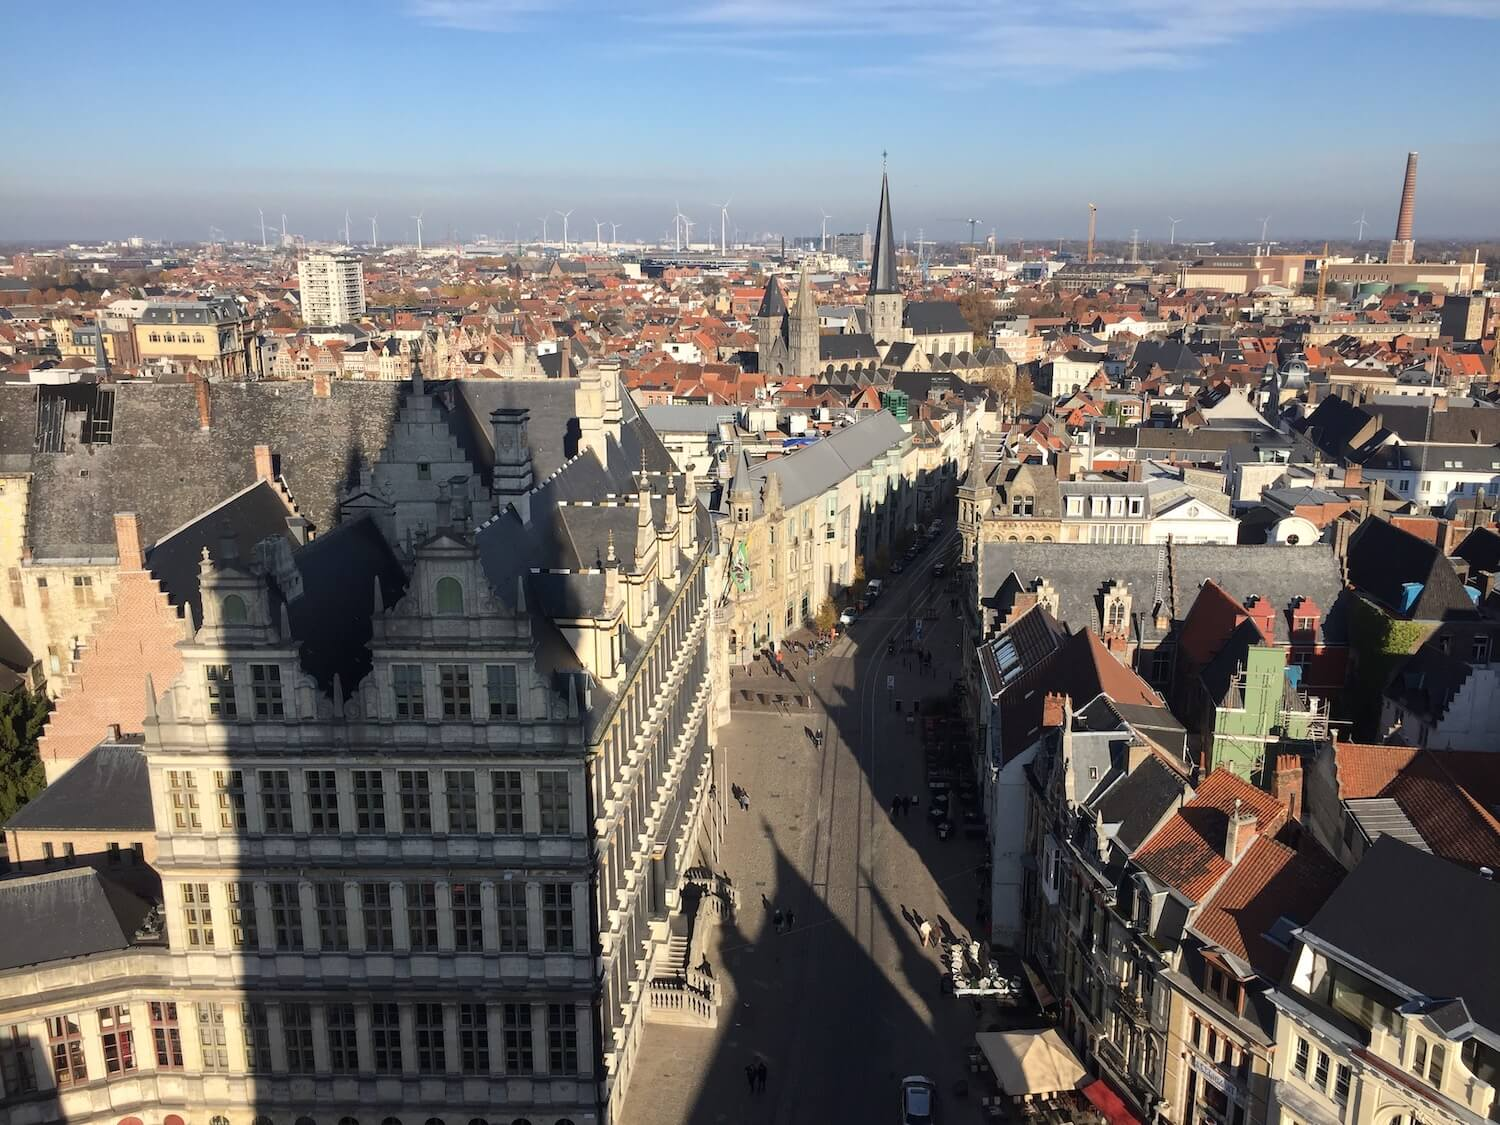 Views of Ghent